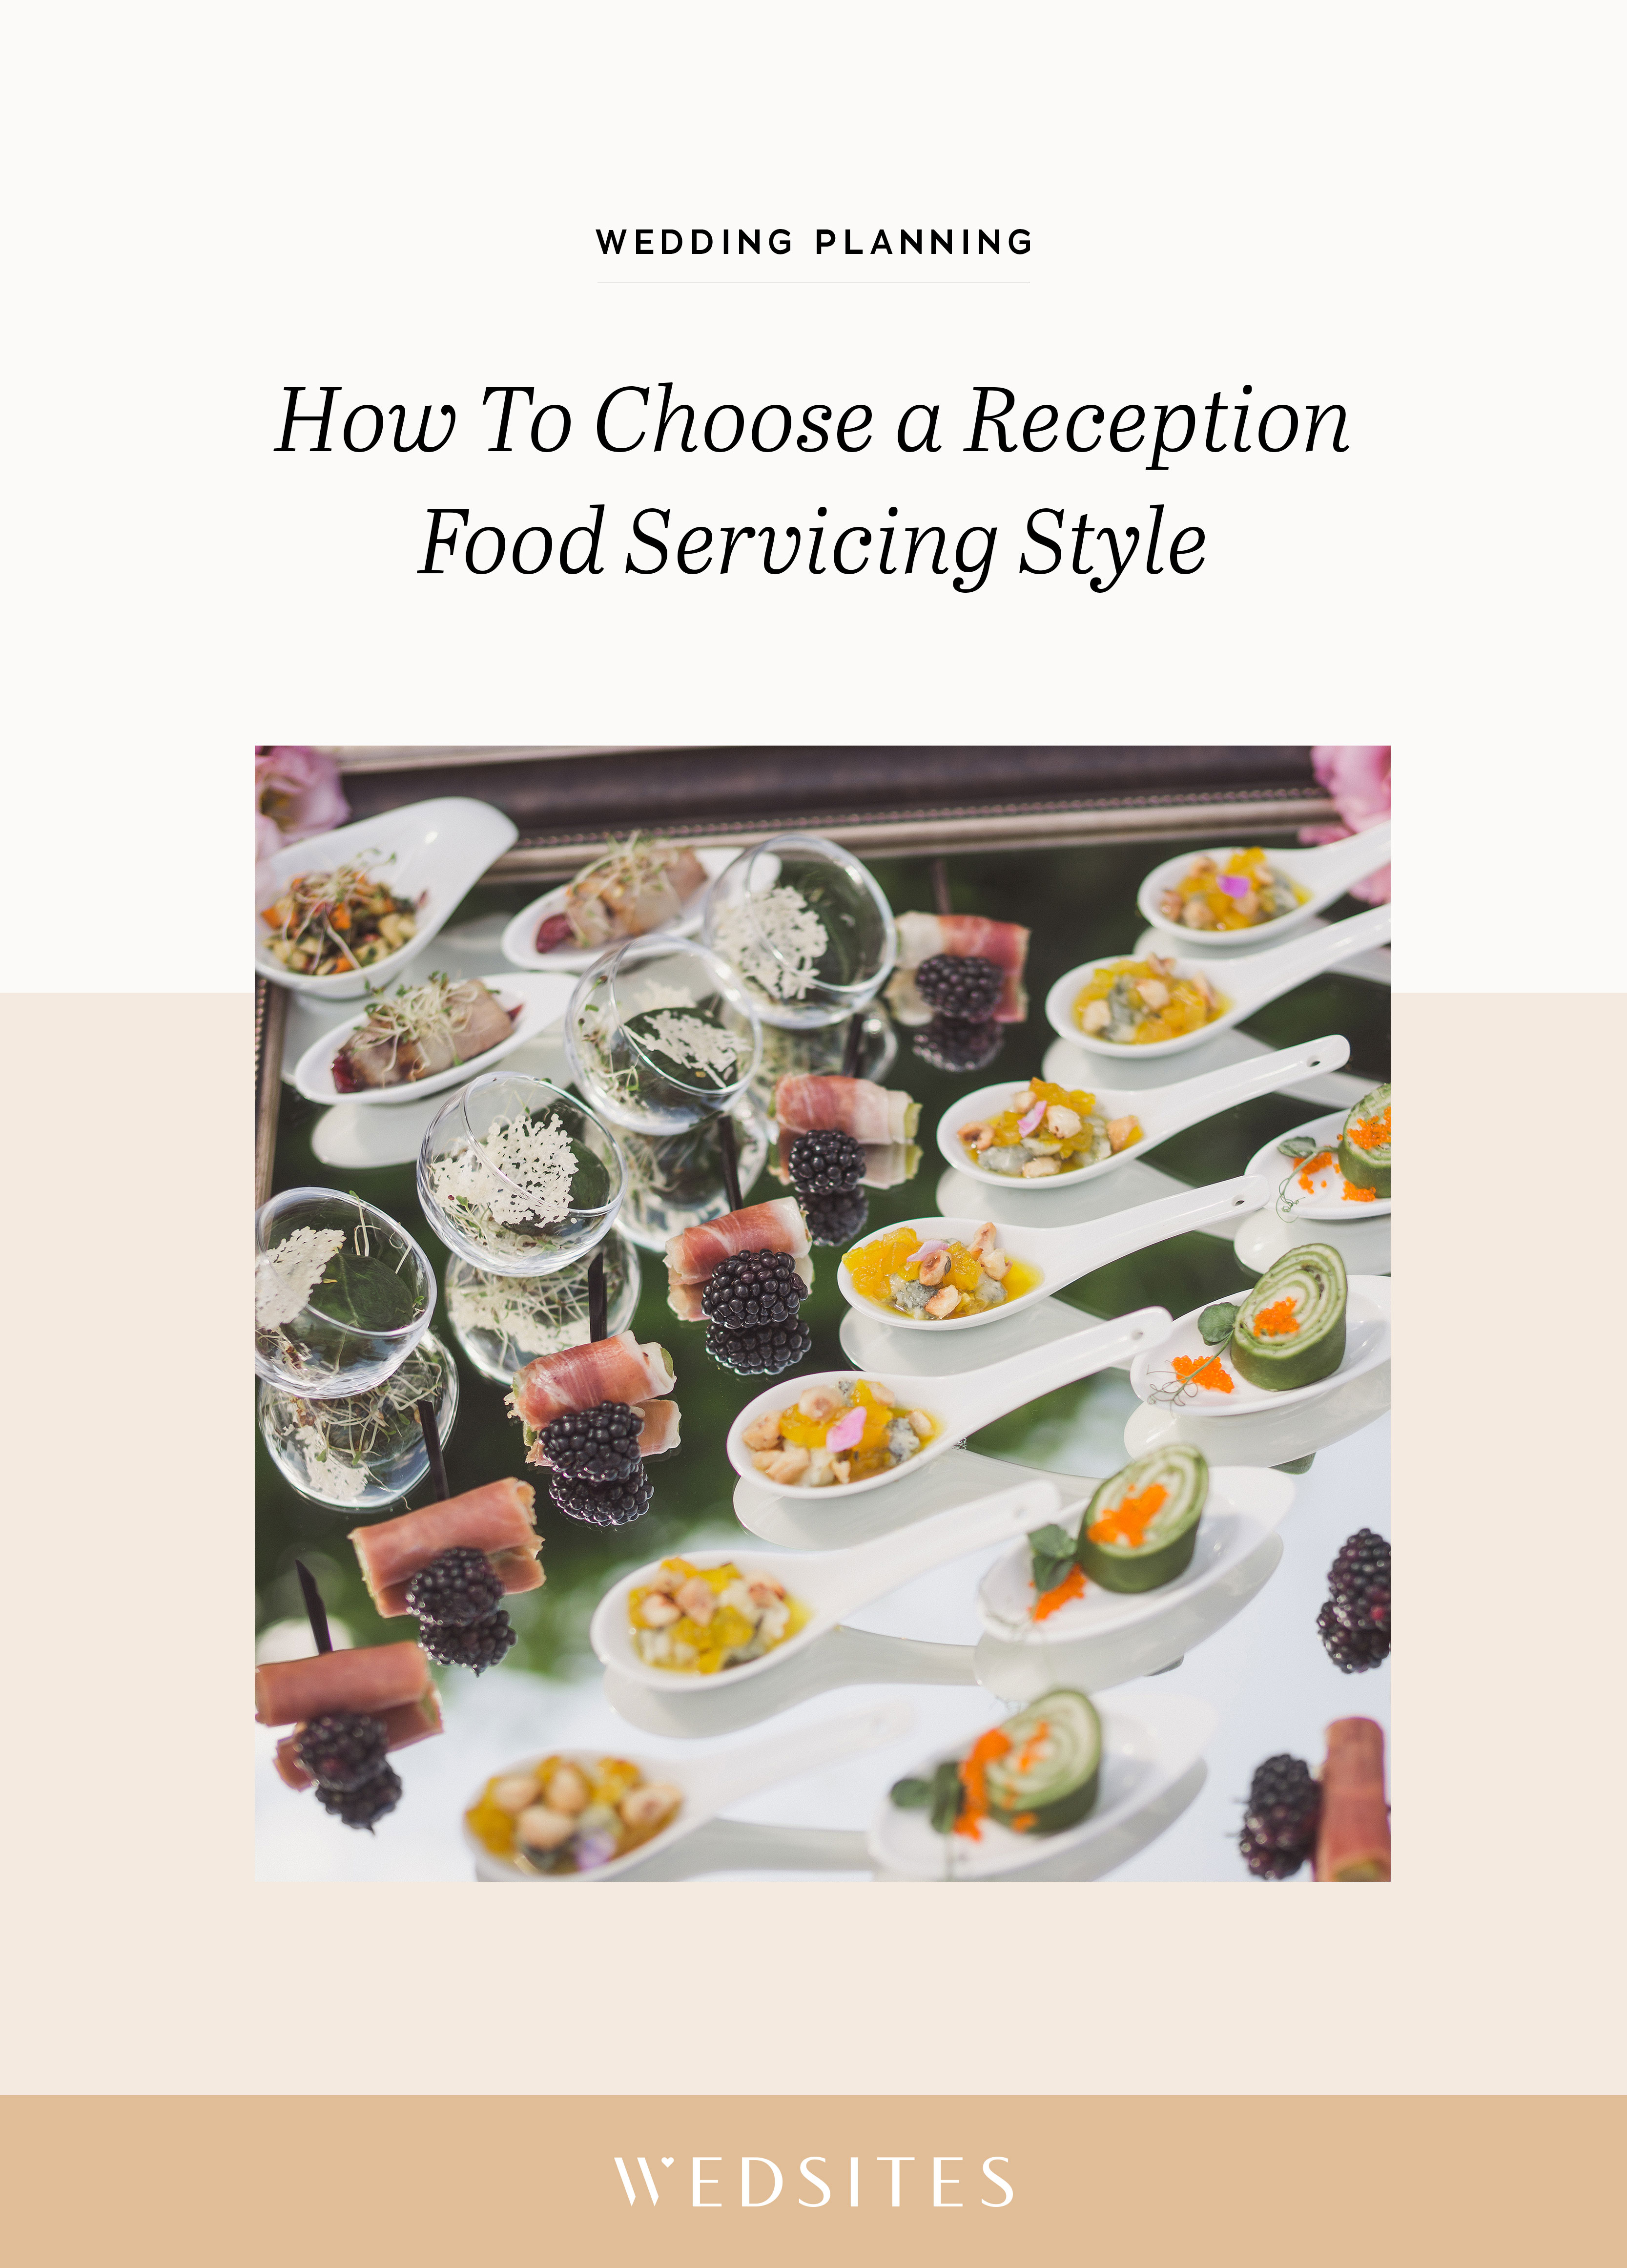 wedsites-how-to-choose-a-wedding-reception-catering-service-style